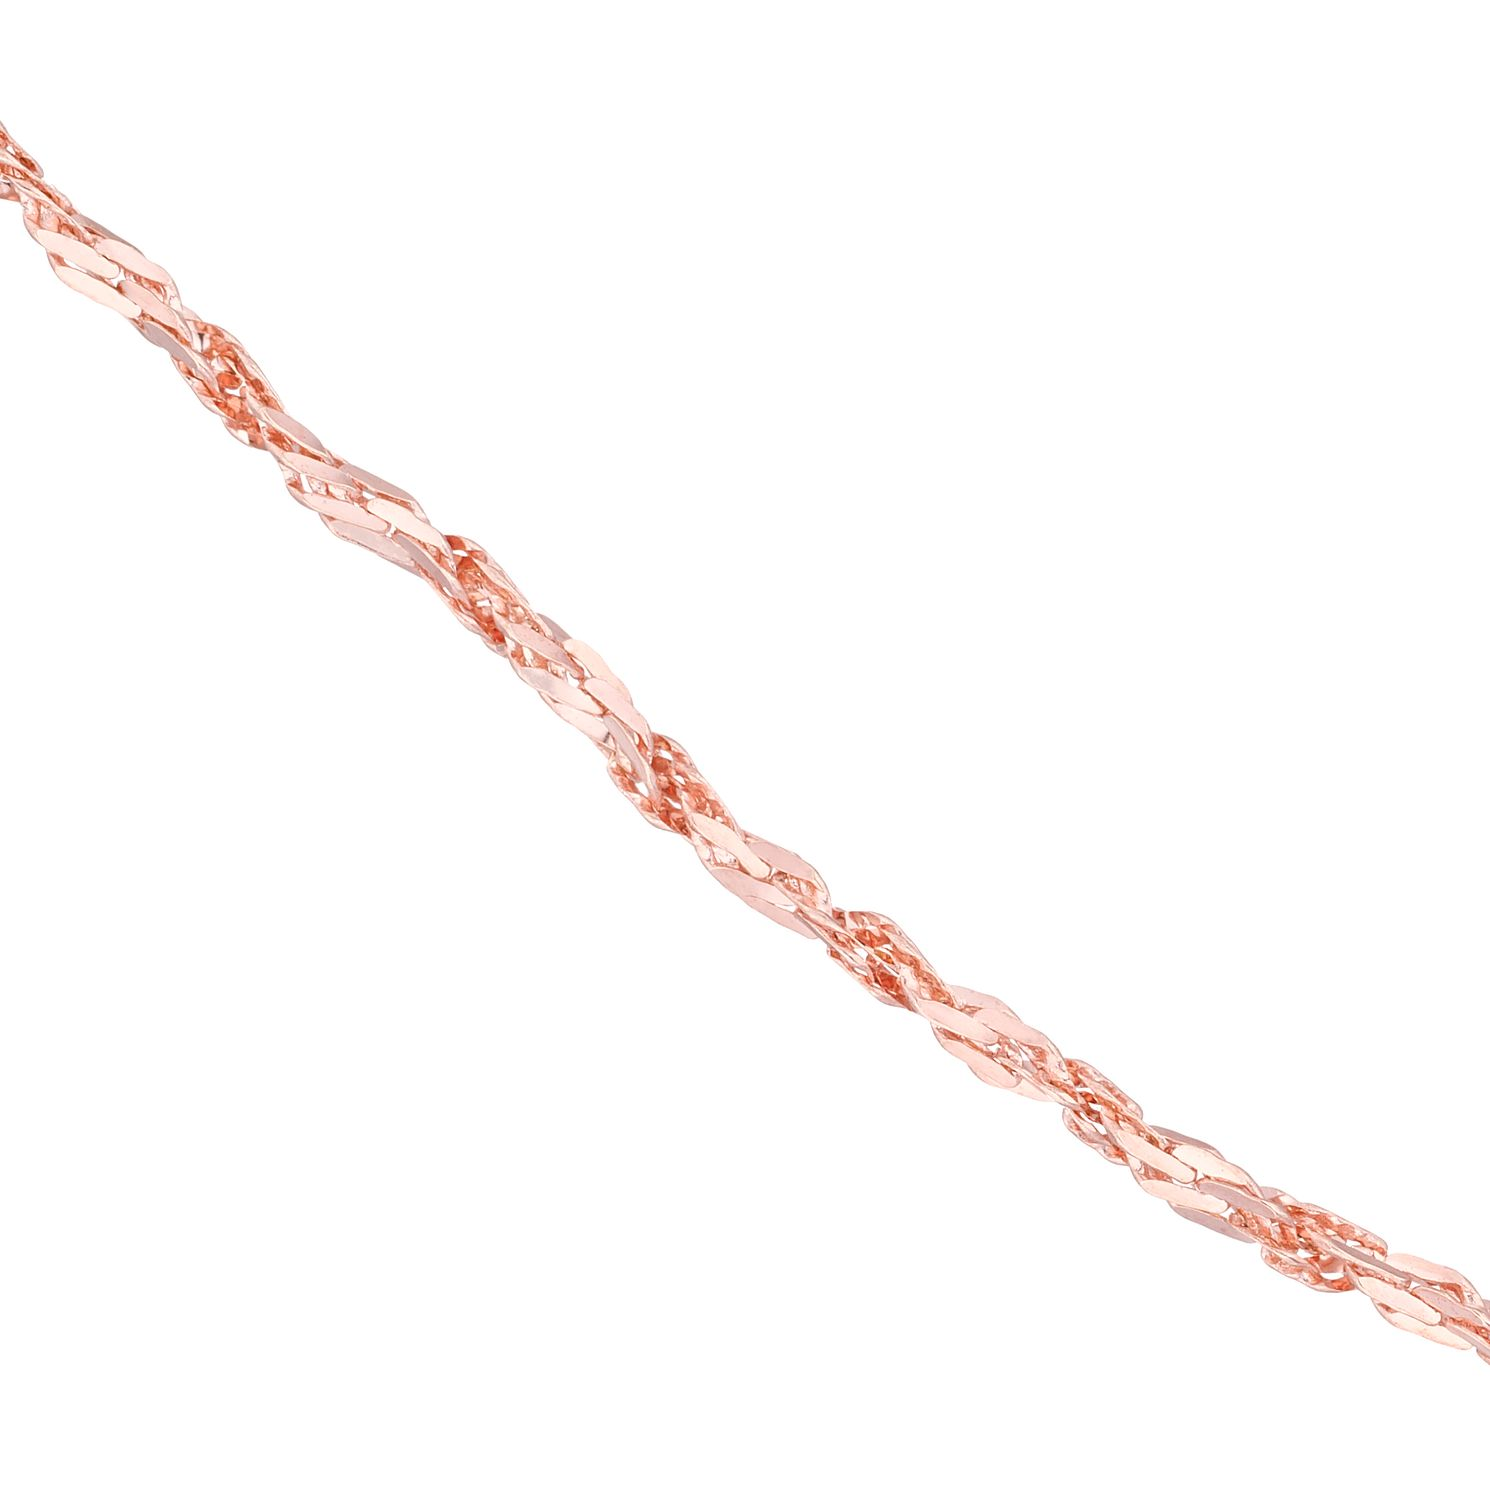 9ct Rose Gold 18 inches Chain Necklace - Product number 8108900